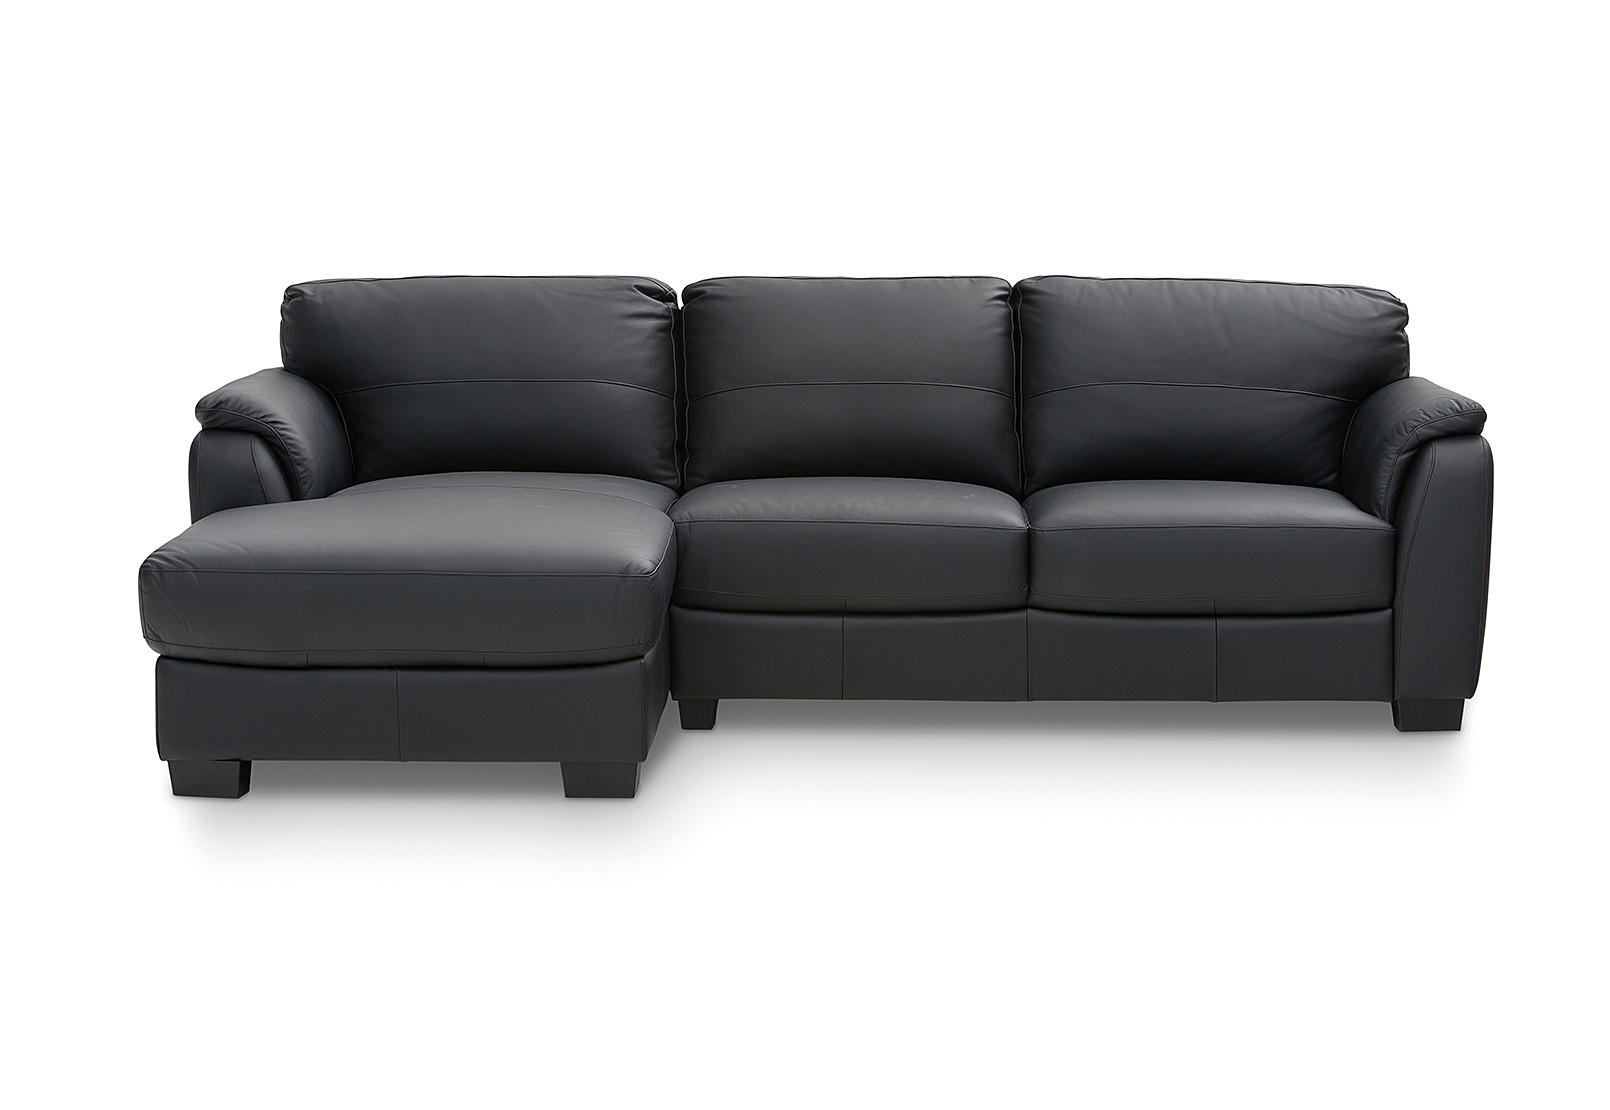 Marissa Leather 3 Seater Chaise | Amart Furniture Regarding Marissa Sofa Chairs (View 8 of 25)